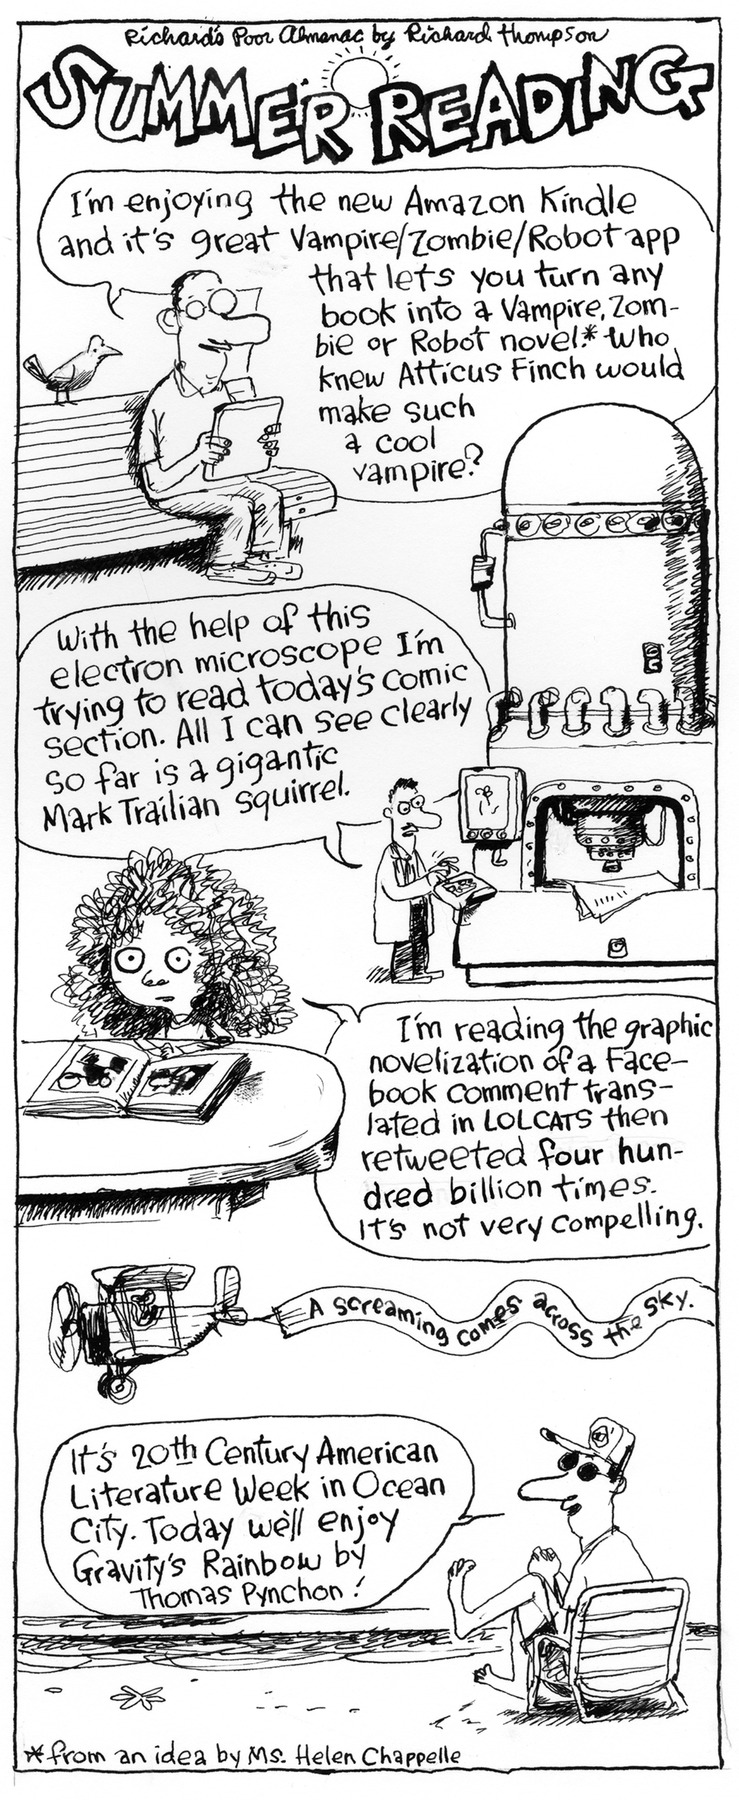 richard's poor almanac by richard thompson summer reading  man: i'm enjoying the new amazon kindle and it's great vampire/zombie/robot app that lets you turn any book into a vampire, zom-bie or robot novel.* who knew atticus finch would make such a cool vampire?  scientist: with the help of this electron microscope i'm trying to read today's comic section. all i can see clearly so far is a gigantic mark trailian squirrel.  kid: i'm reading the graphic novelization of a face-book comment trans-lated in lolcats then retweeted four hun-dred billion times. it's not very compelling.  a screaming comes across the sky.  man 2: it's 20th century american literature week in ocean city. today we'll enjoy gravity's rainbow by thomas pynchon! *from an idea by ms. helen chappelle